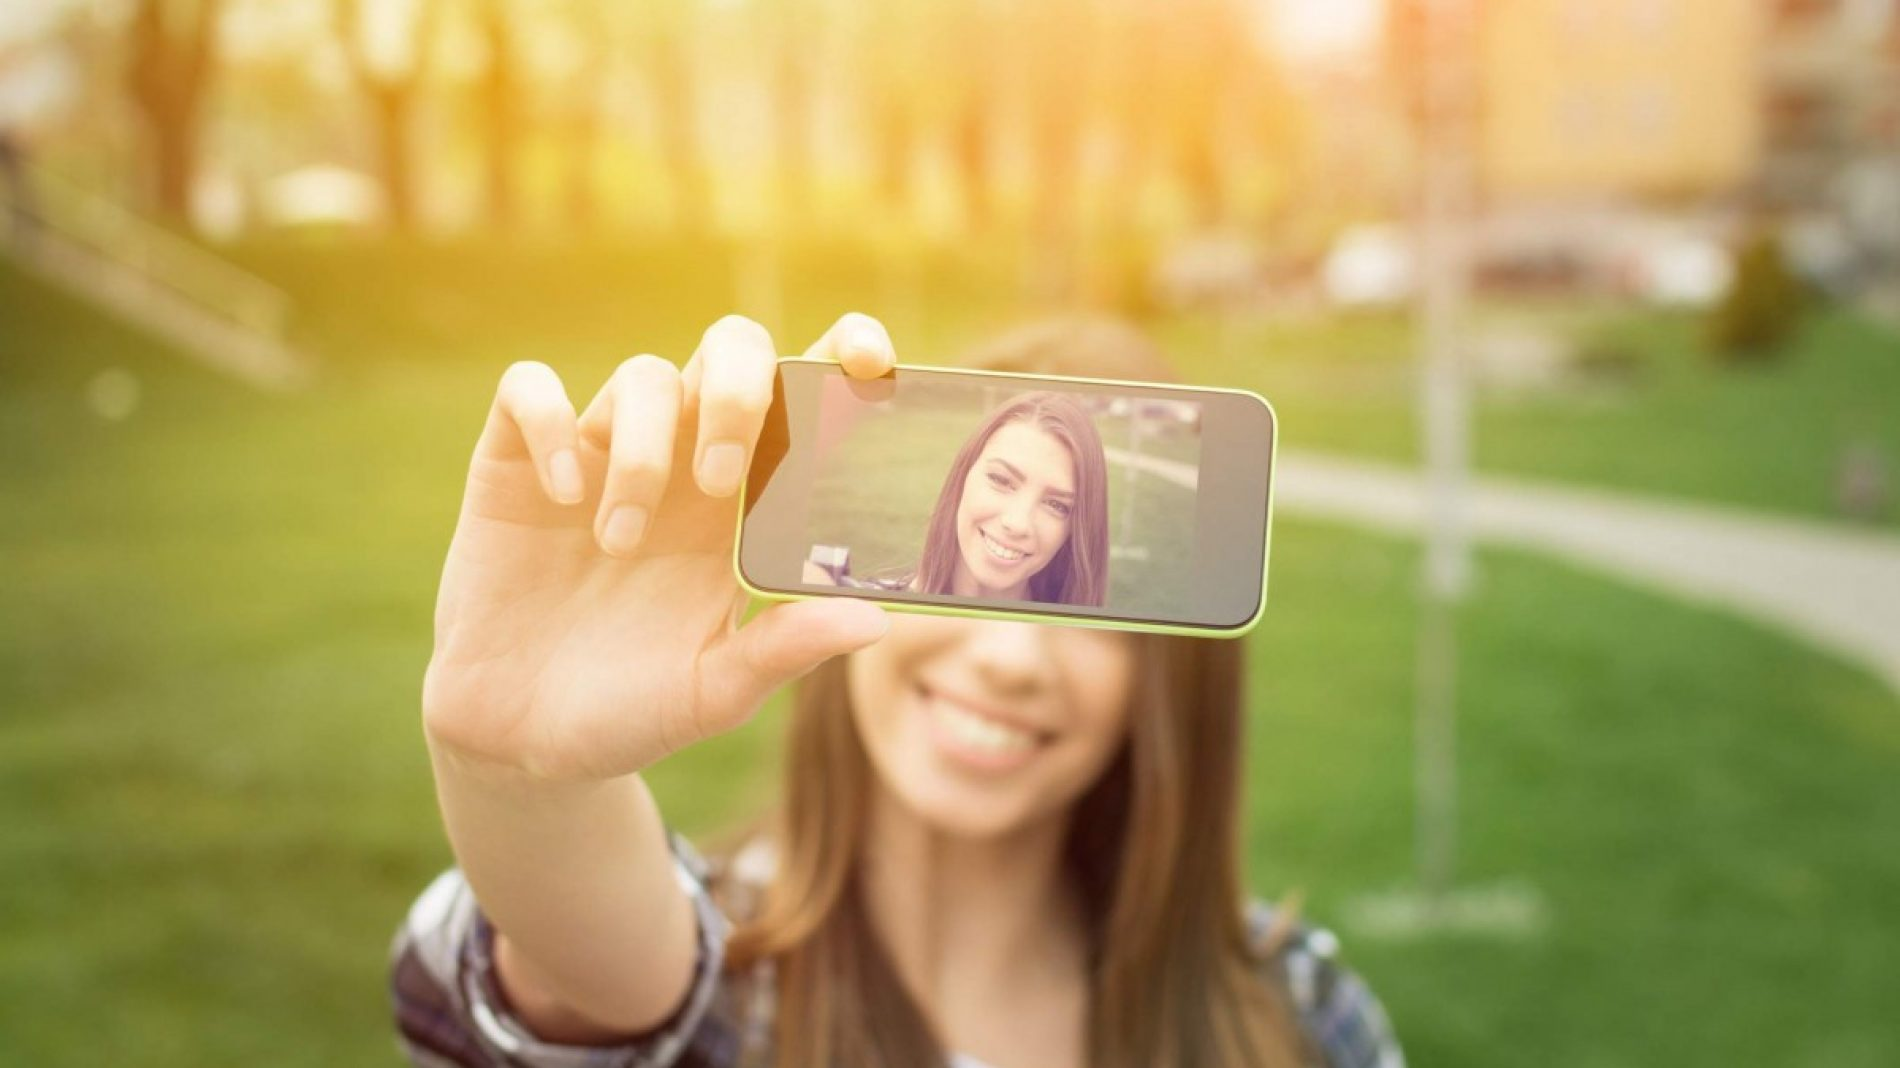 woman taking a selfie in the park